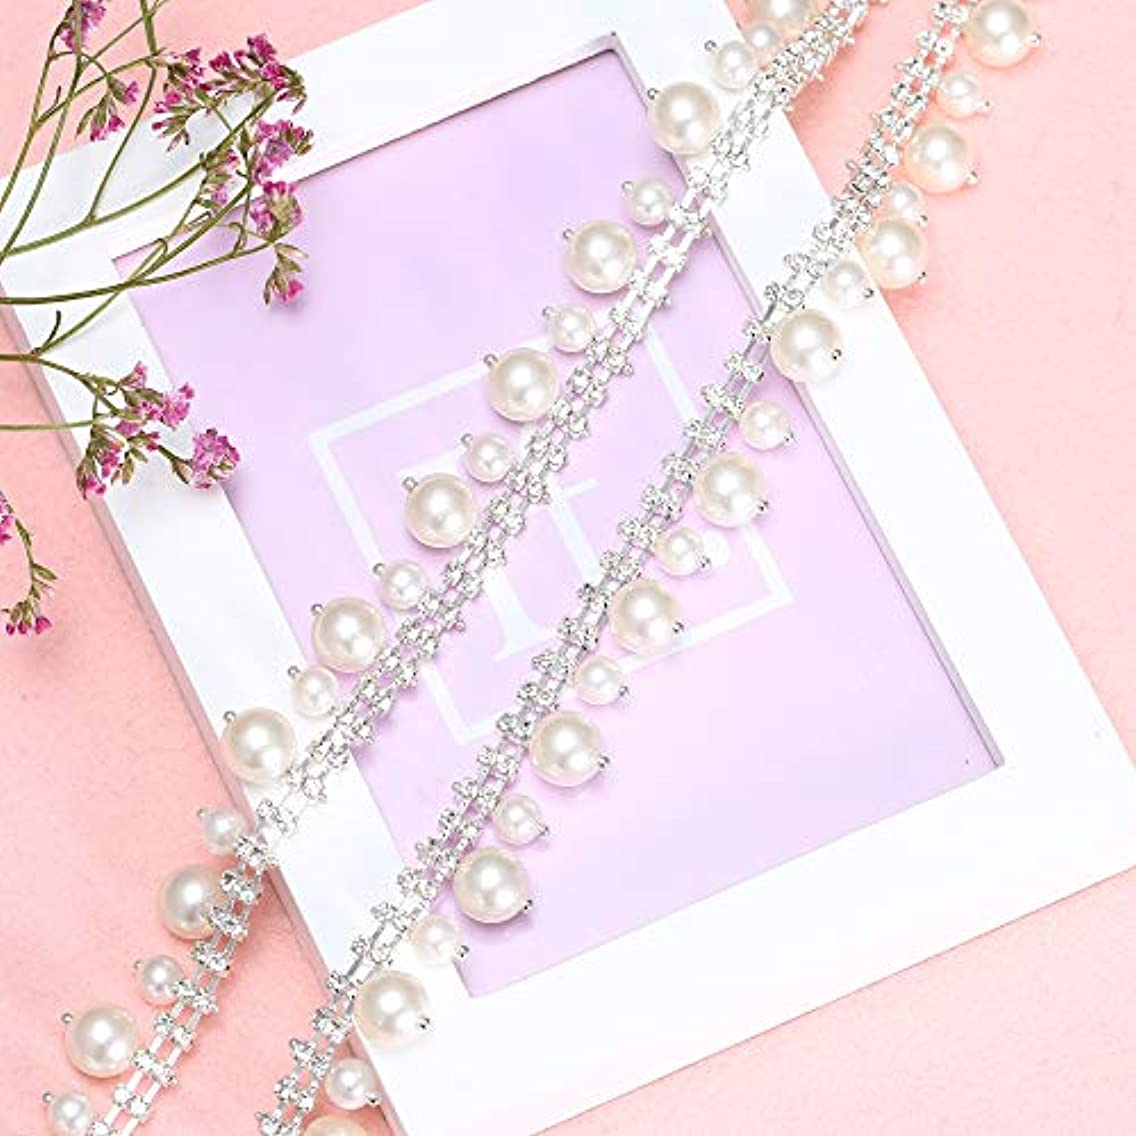 Beaded Pearls Chain Trim, Lucky Goddness 1 Yard Silver Rhinestone Tassel Fringe Chains, Perfect for DIY Dress Clothes Collars, Bags Jewelry, Headpieces, Shoes, Wedding Accessories Decoration